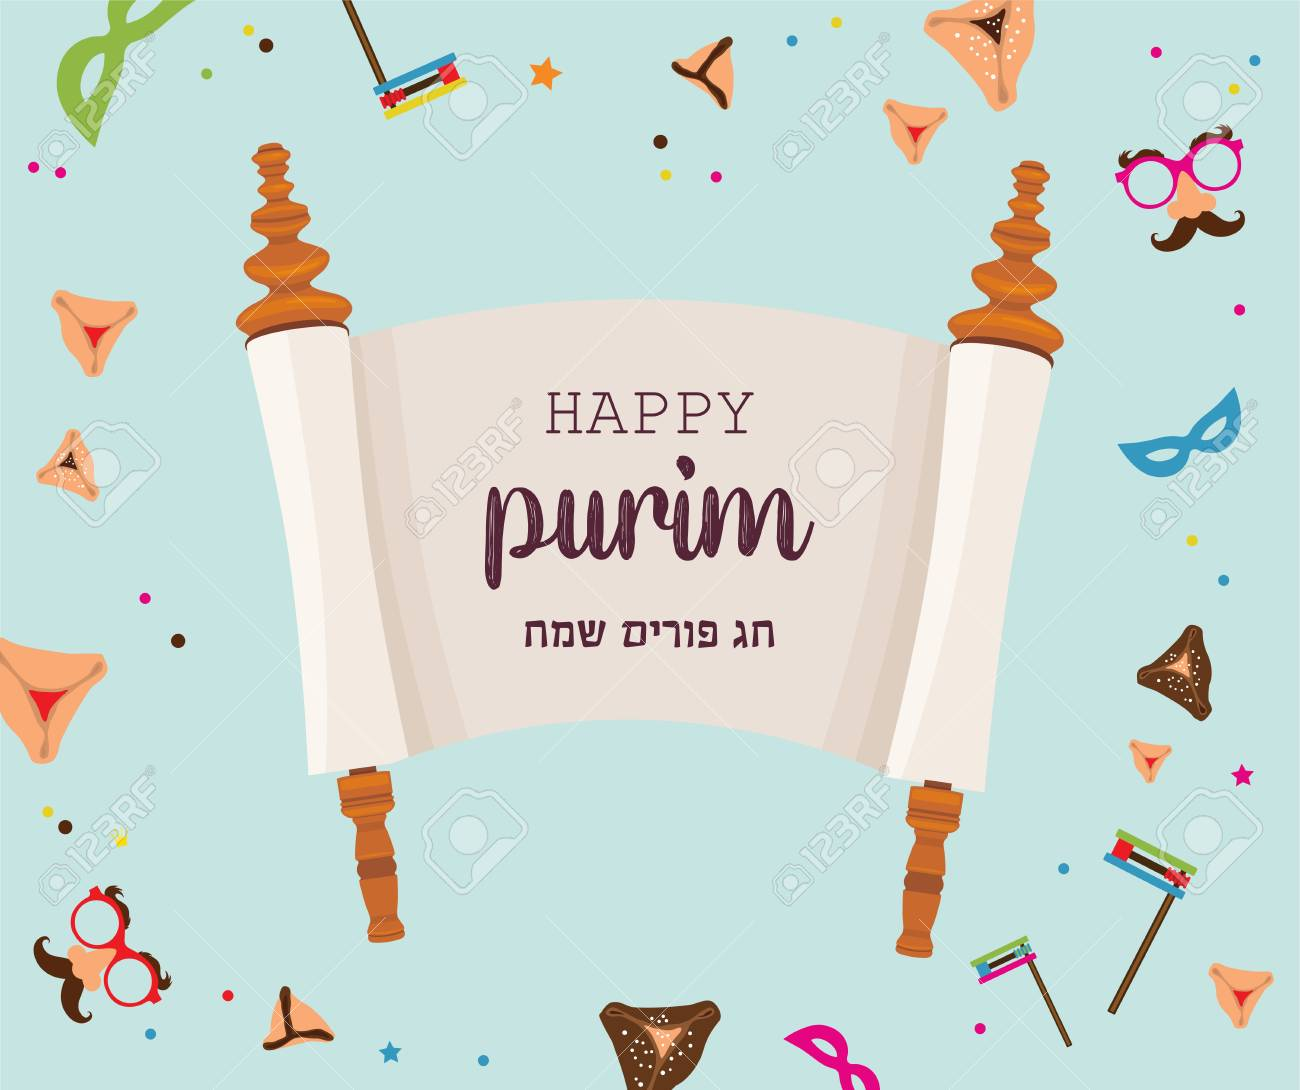 The story of purim jewish ancient scroll card or invitation jewish ancient scroll card or invitation template illustration stock vector stopboris Gallery